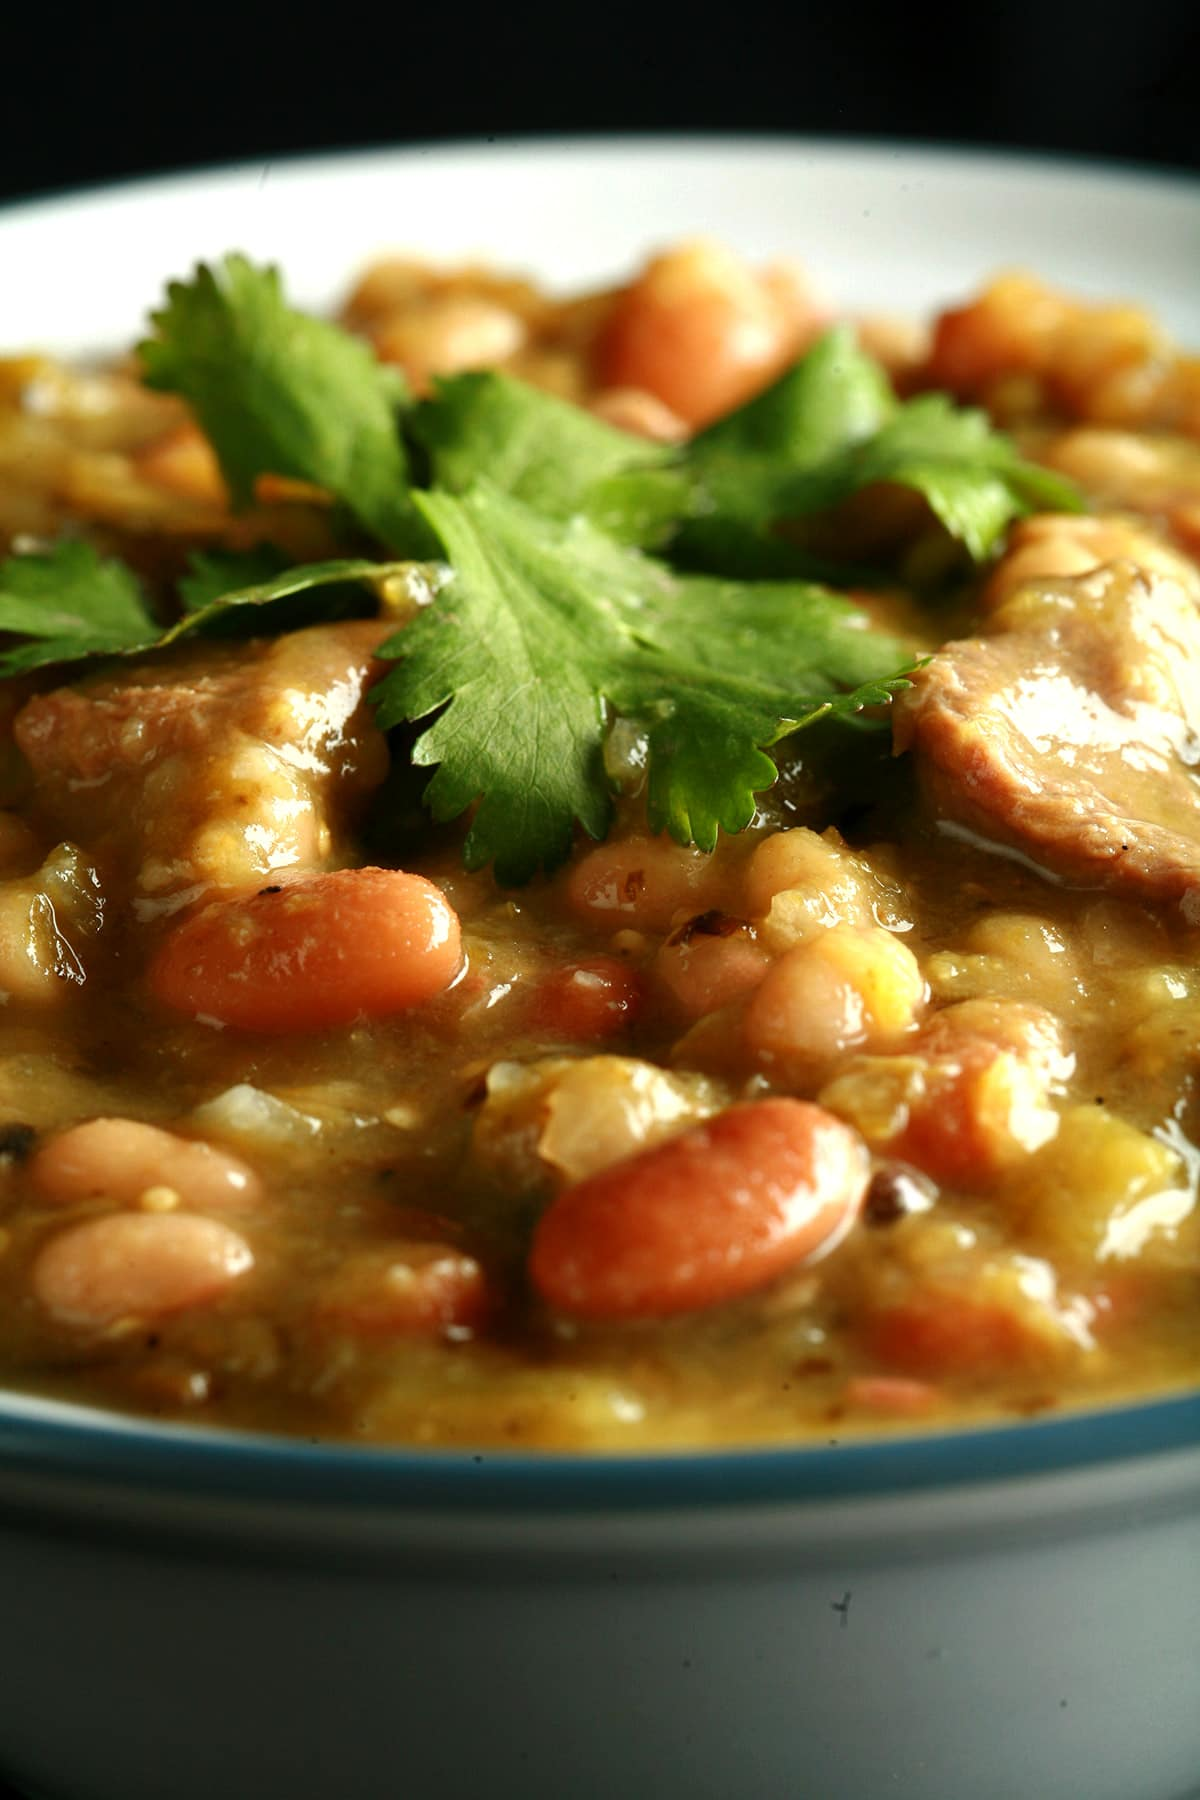 A close up view of a bowl of roasted chili verde.